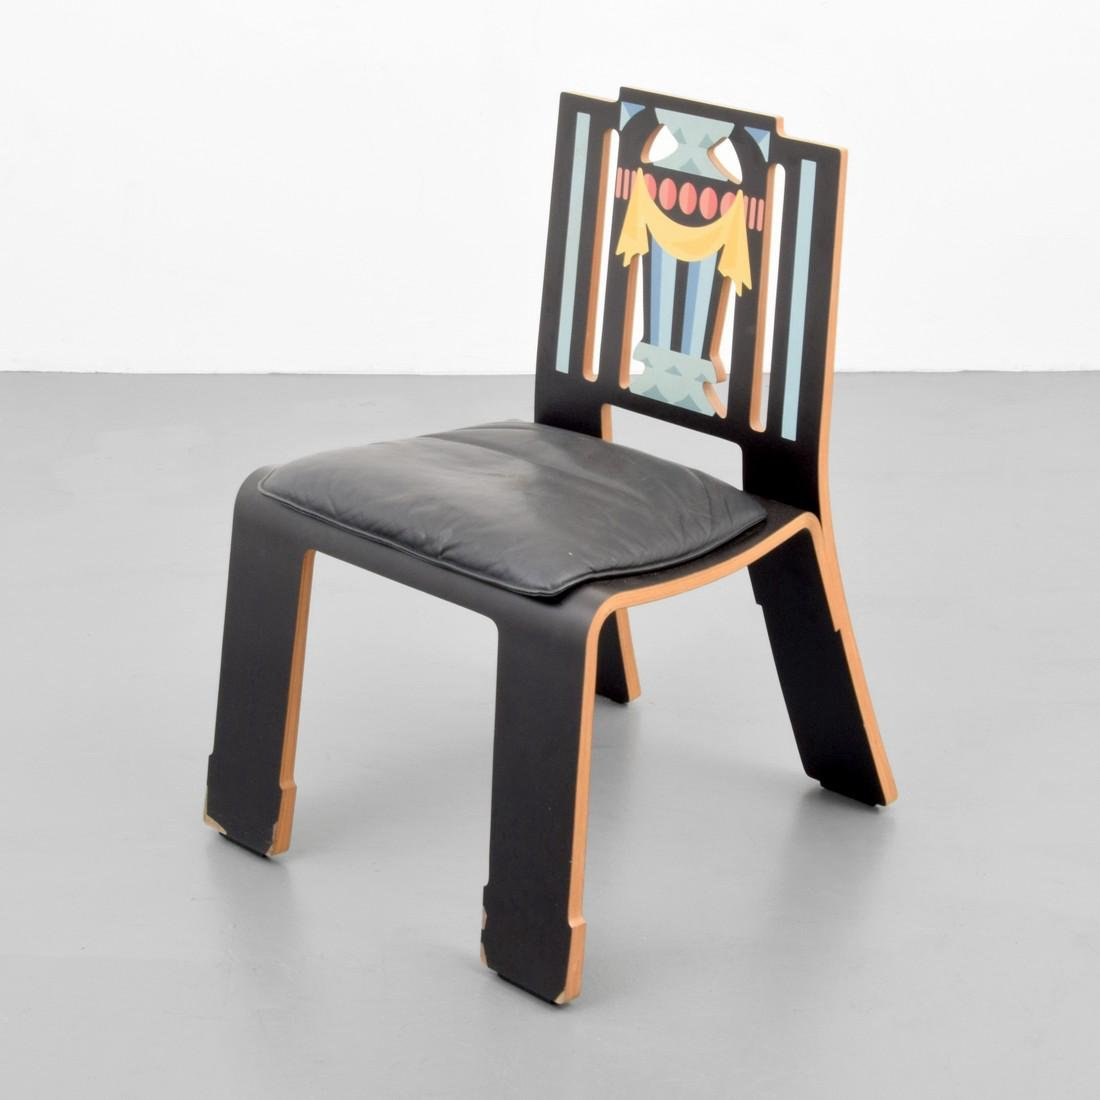 Robert Venturi SHERATON Chair & Robert Venturi Prices - 70 Auction Price Results